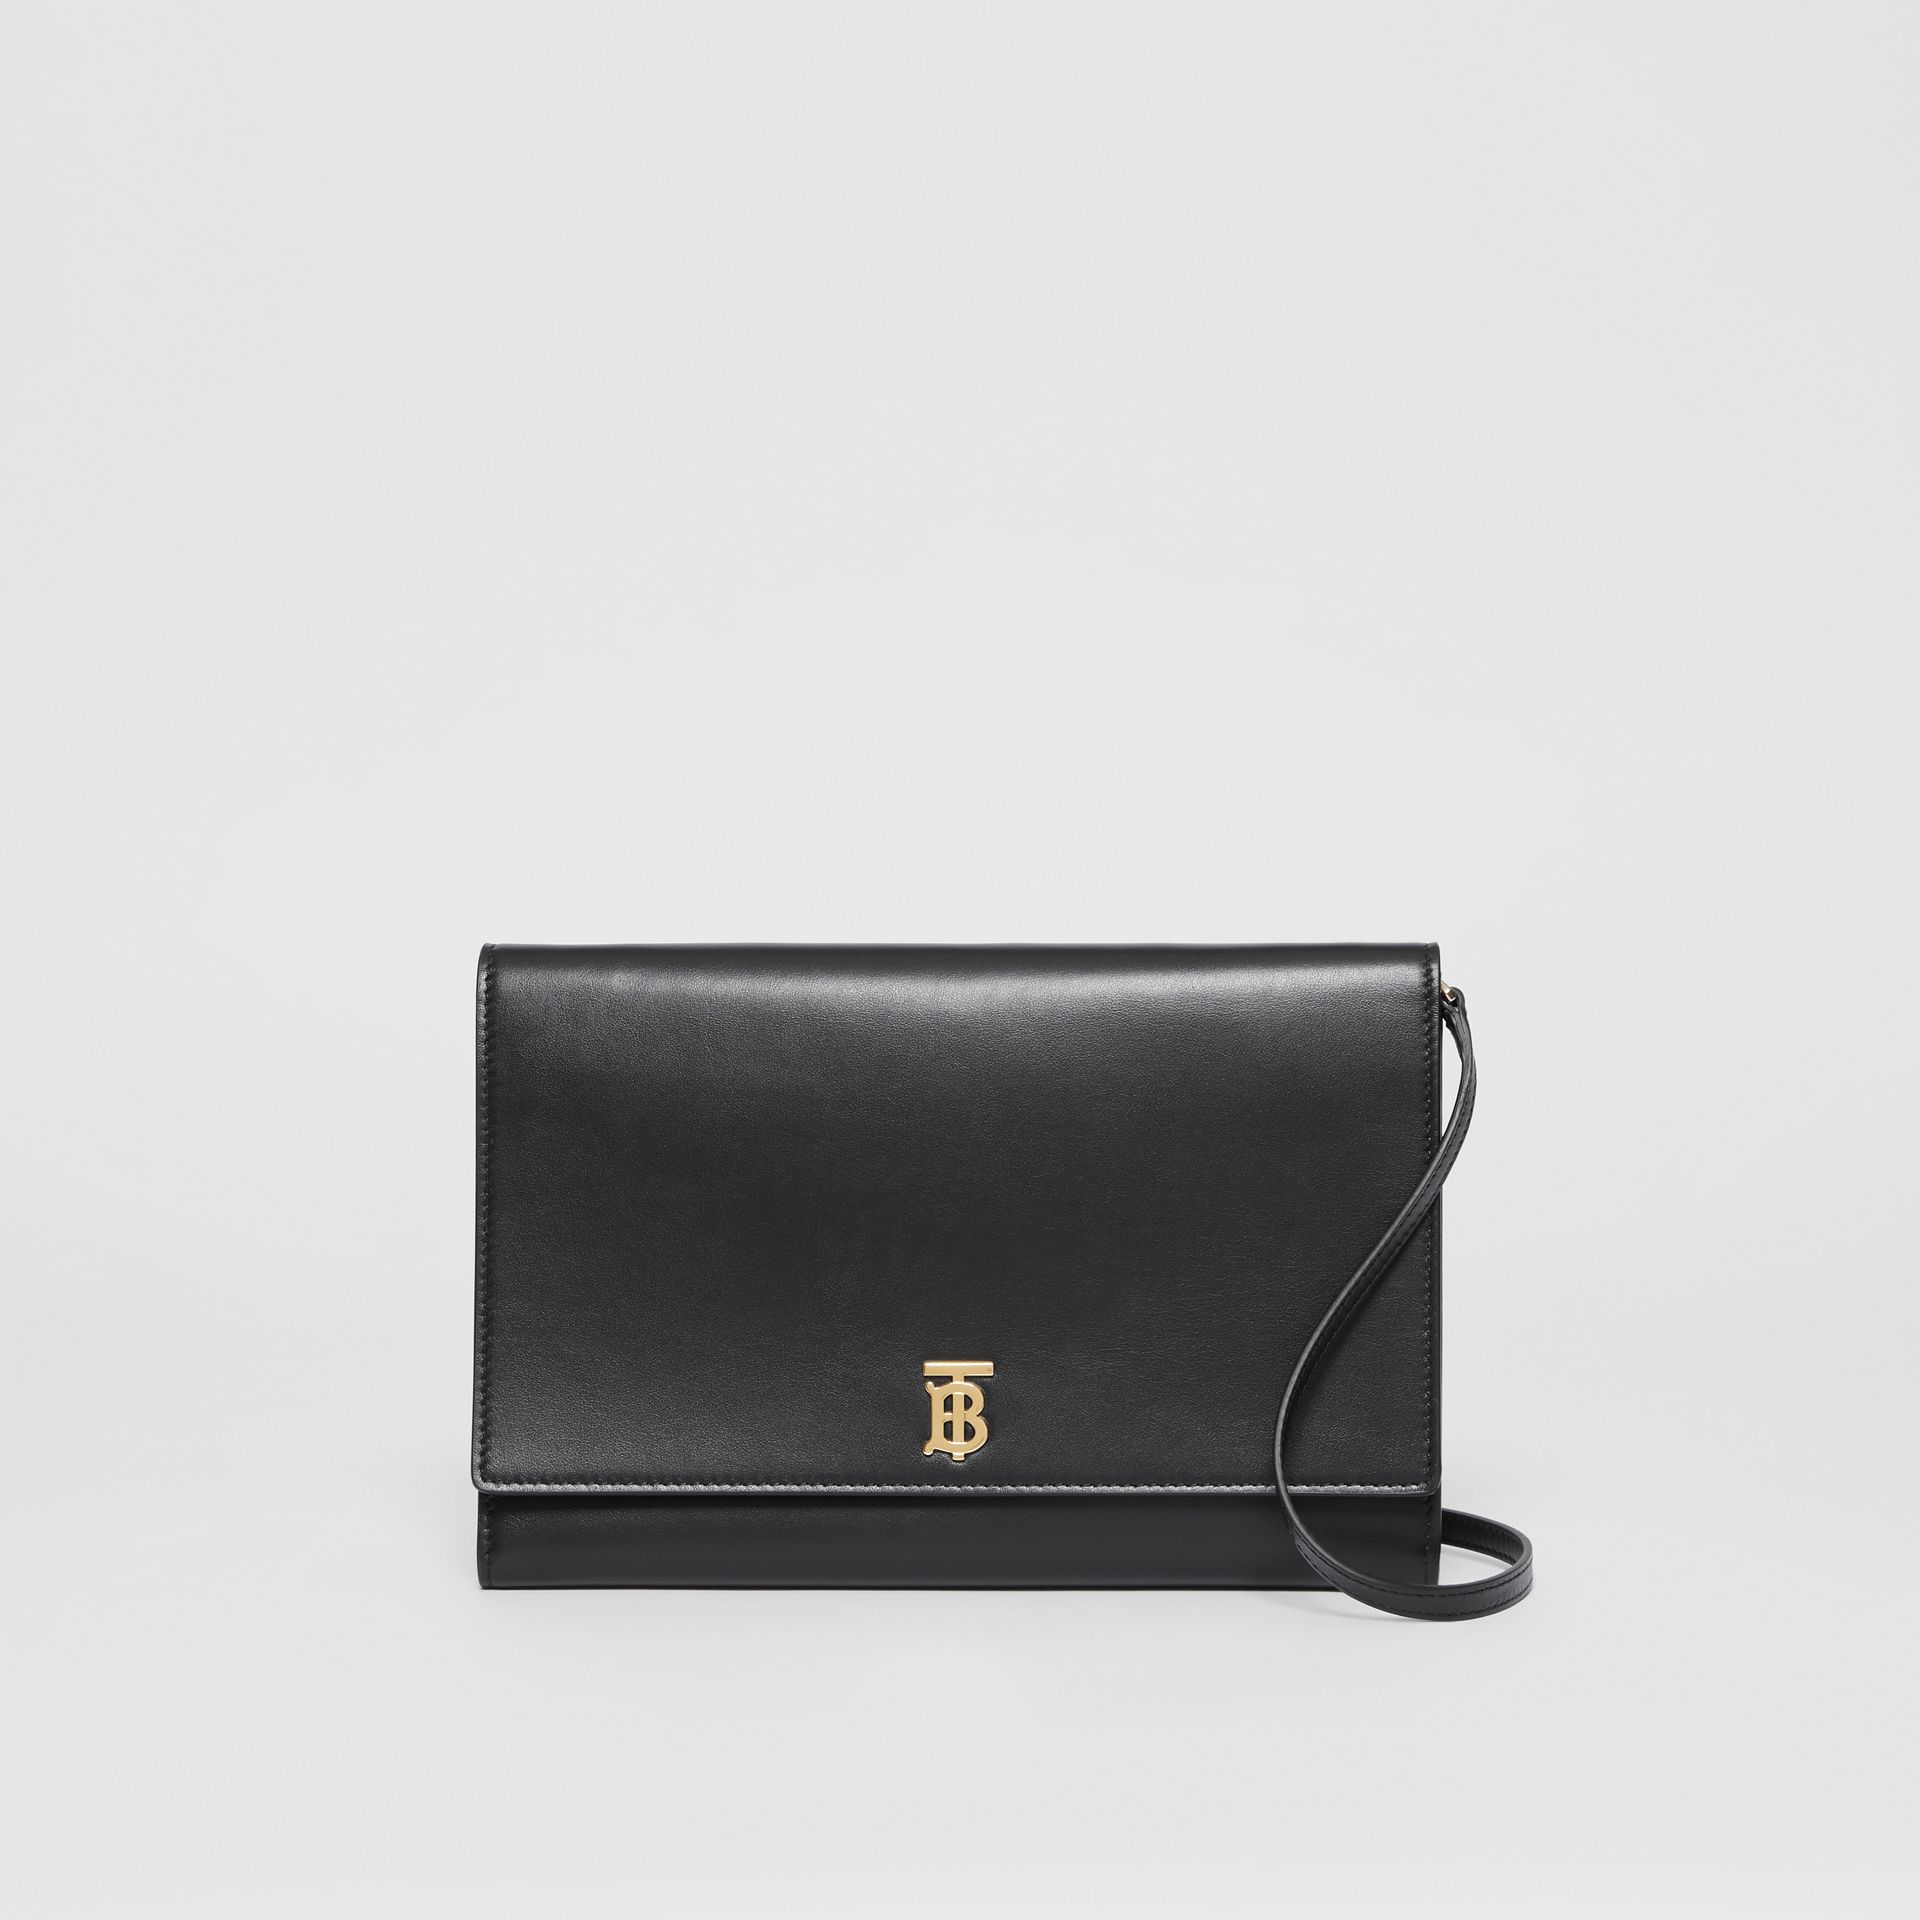 Monogram Motif Leather Bag with Detachable Strap in Black - Women | Burberry United Kingdom - gallery image 0